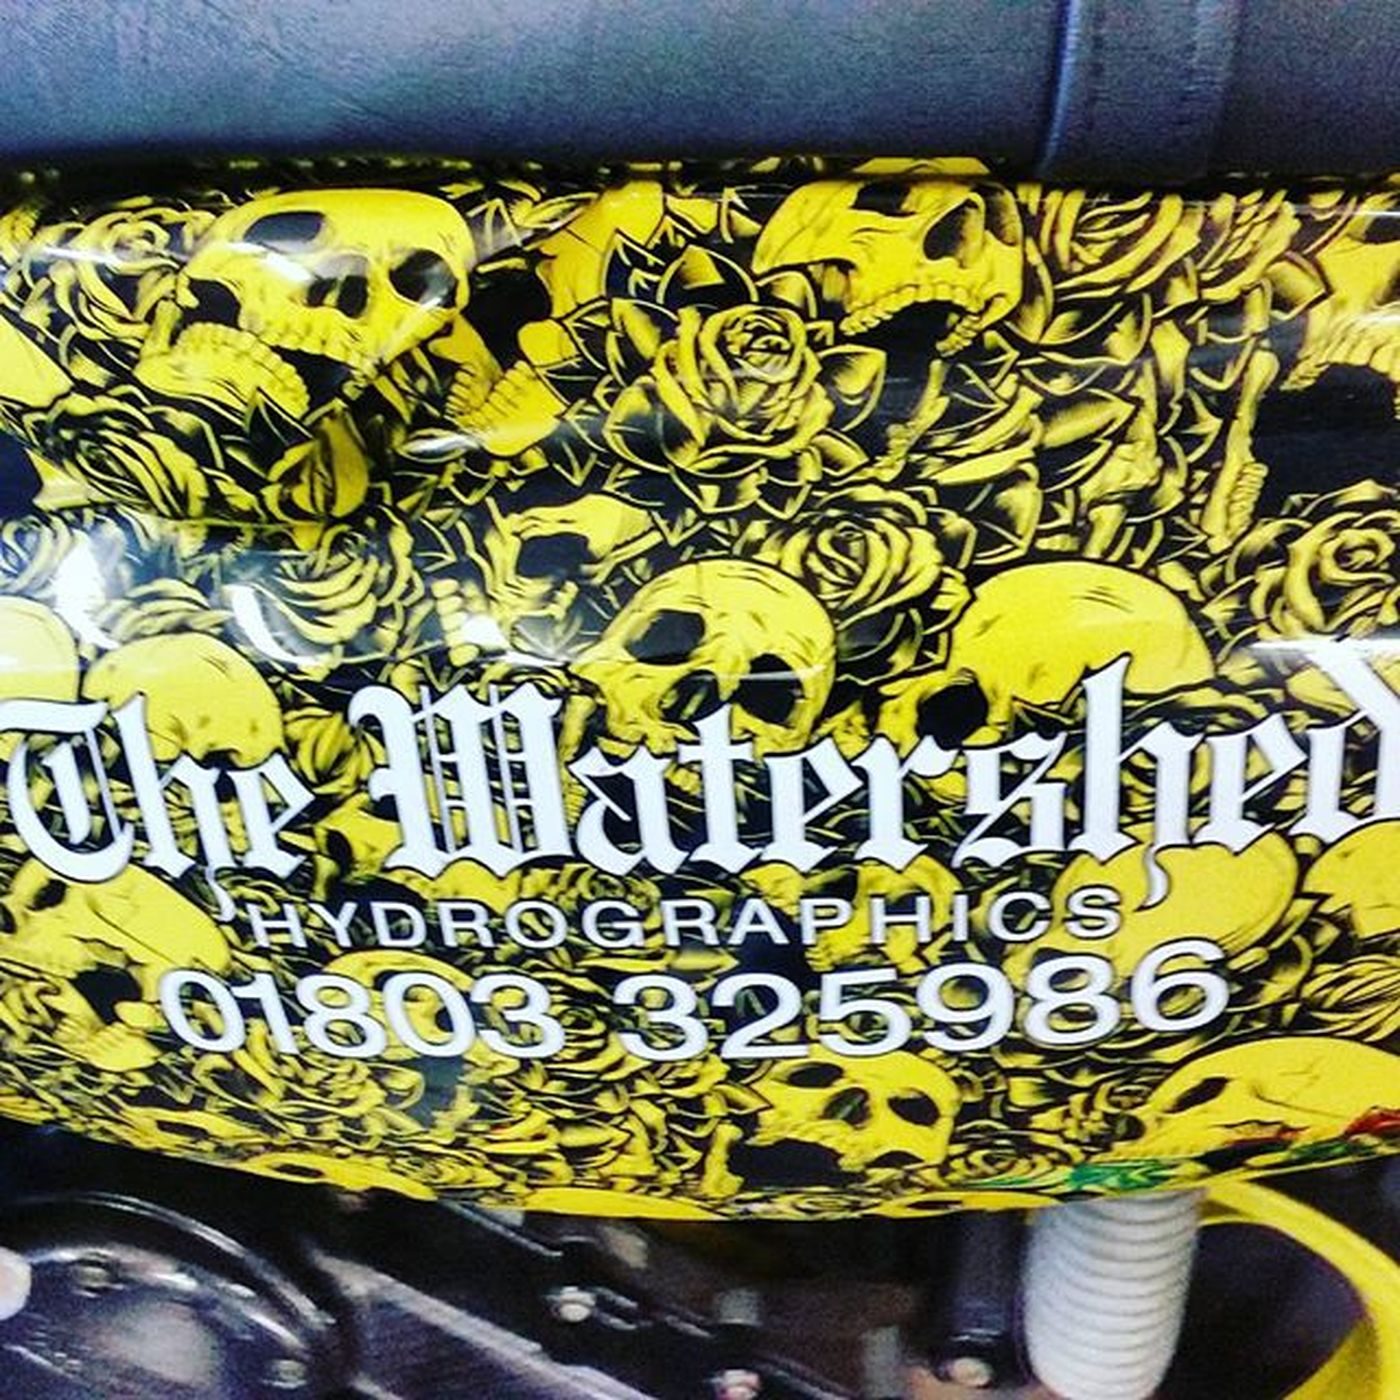 Thewatershed Motorbikes Scooter Cars Hydrographics Torquay Devon